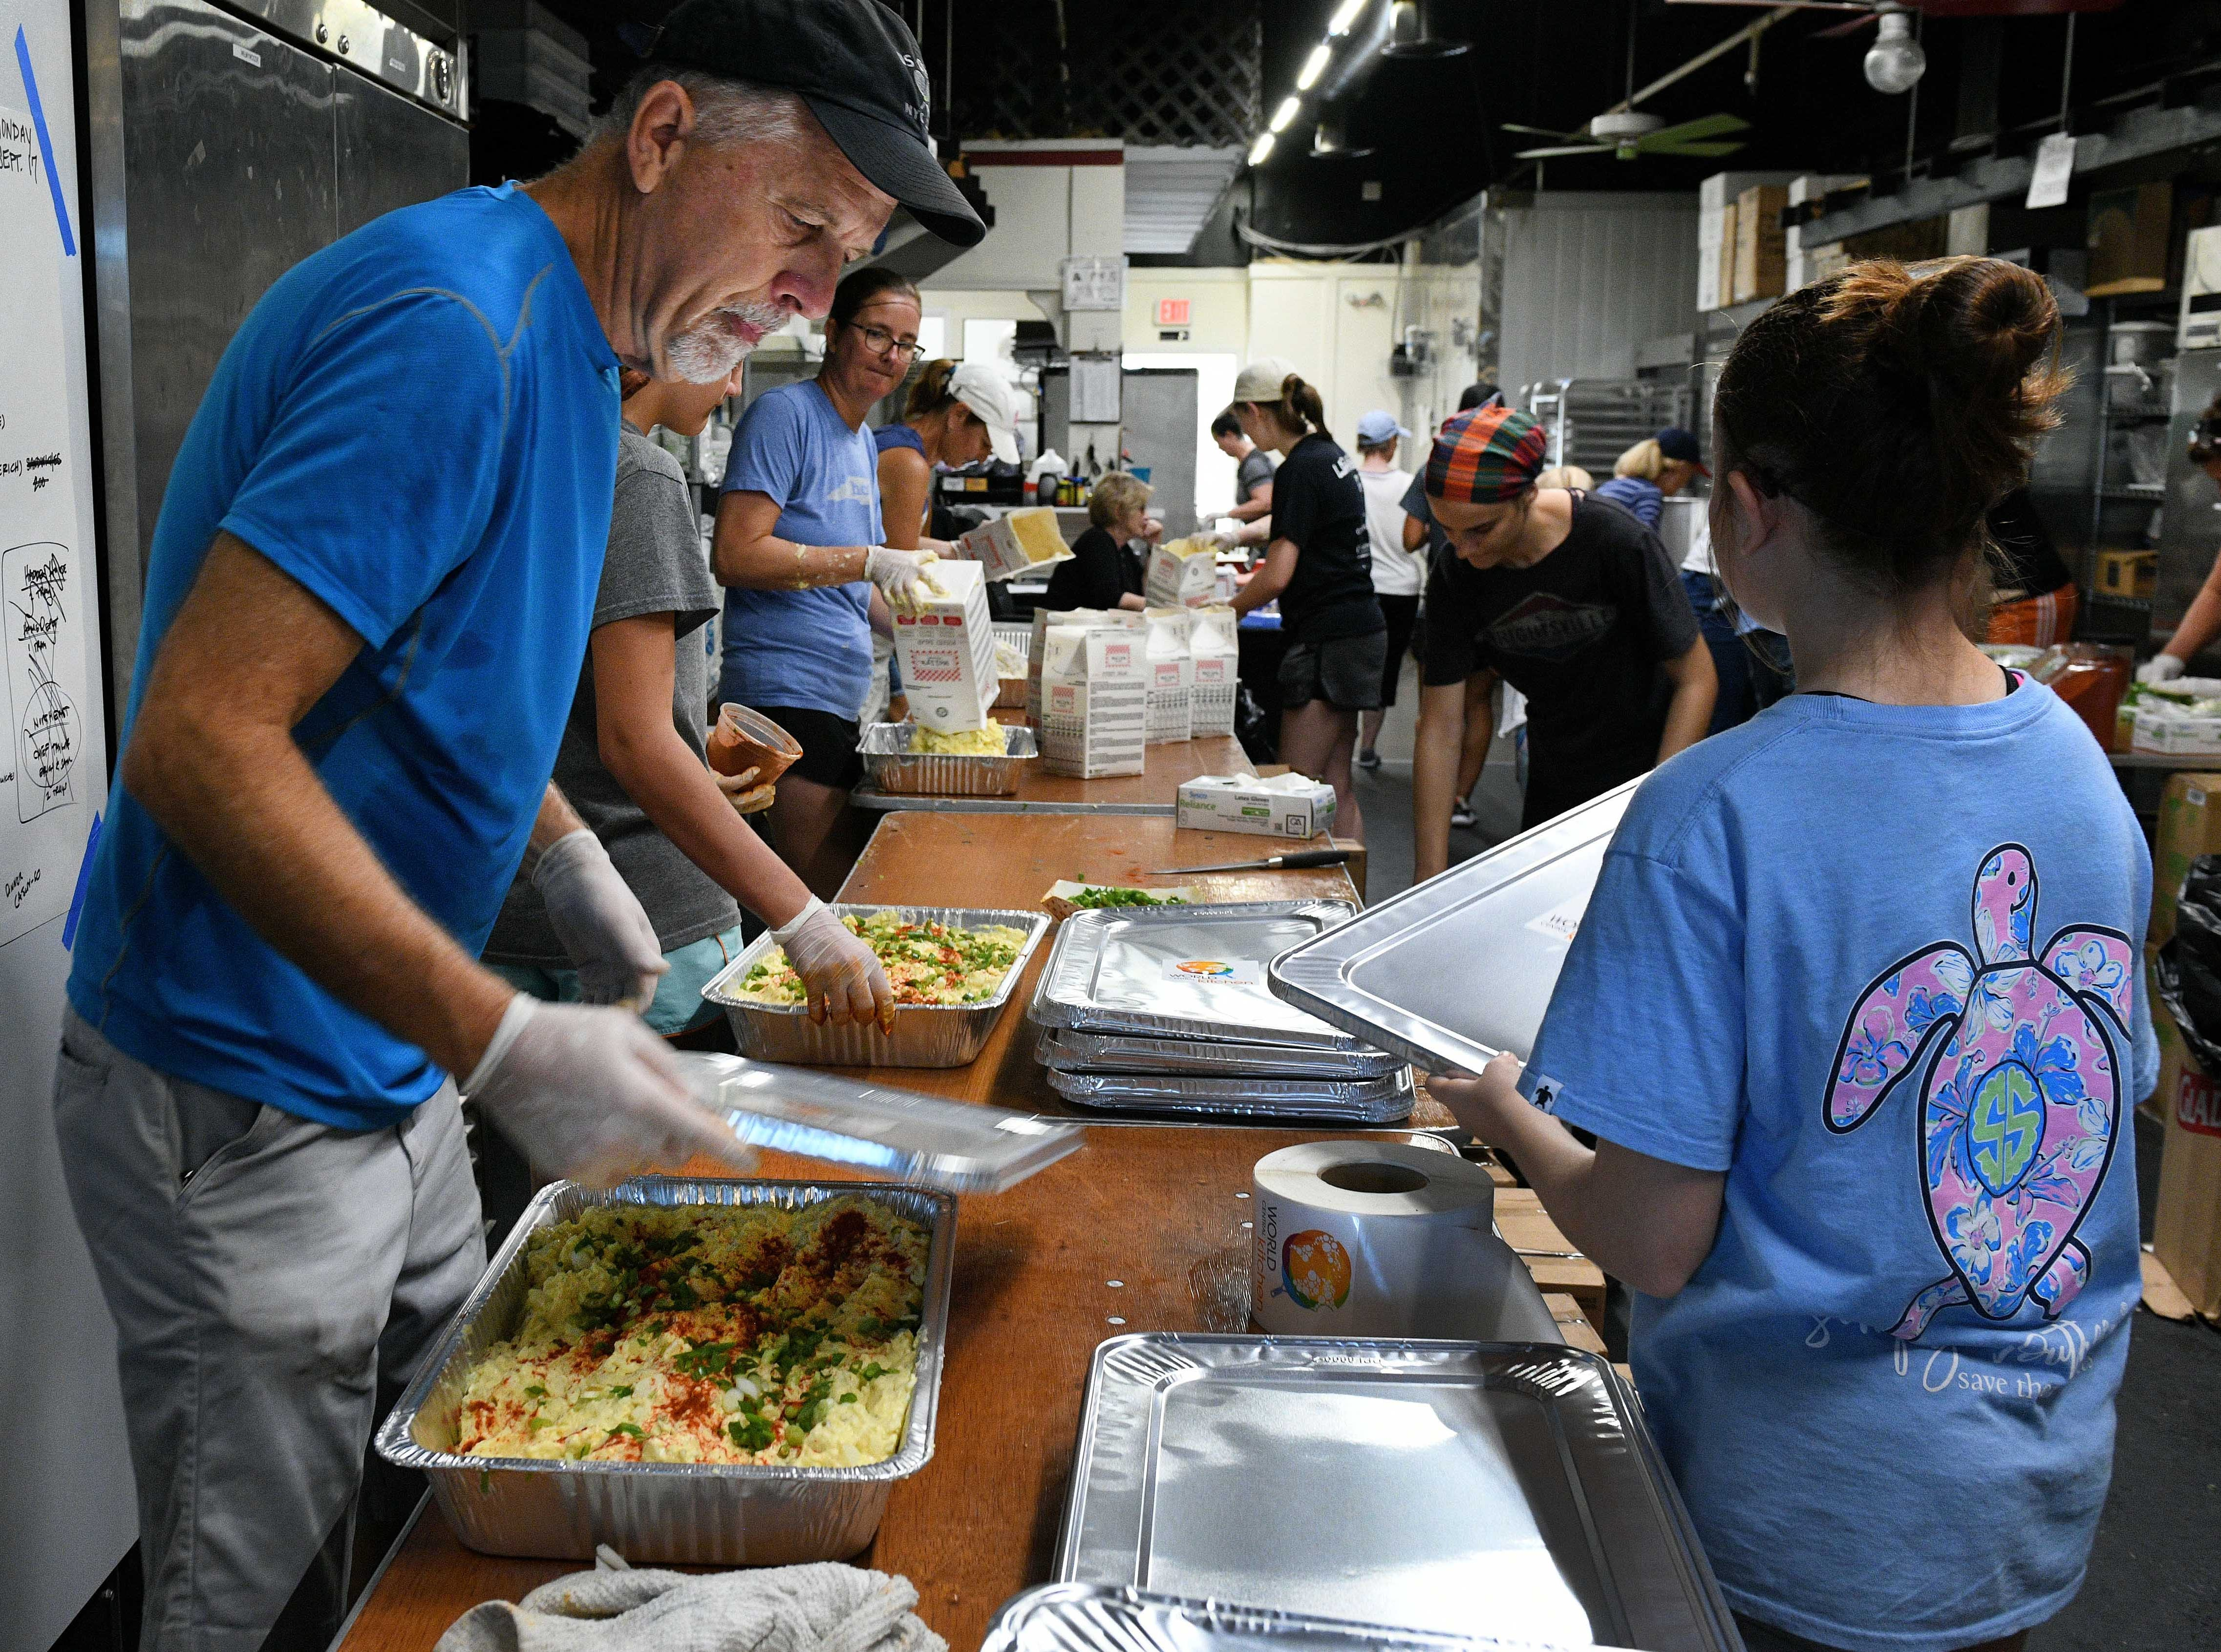 Gary Miller, World Central Kitchen volunteer, seals meals at their relief operation in Wilmington Wednesday, September 19, 2018. Volunteers have prepared over 120,000 meals so far following Hurricane Florence.